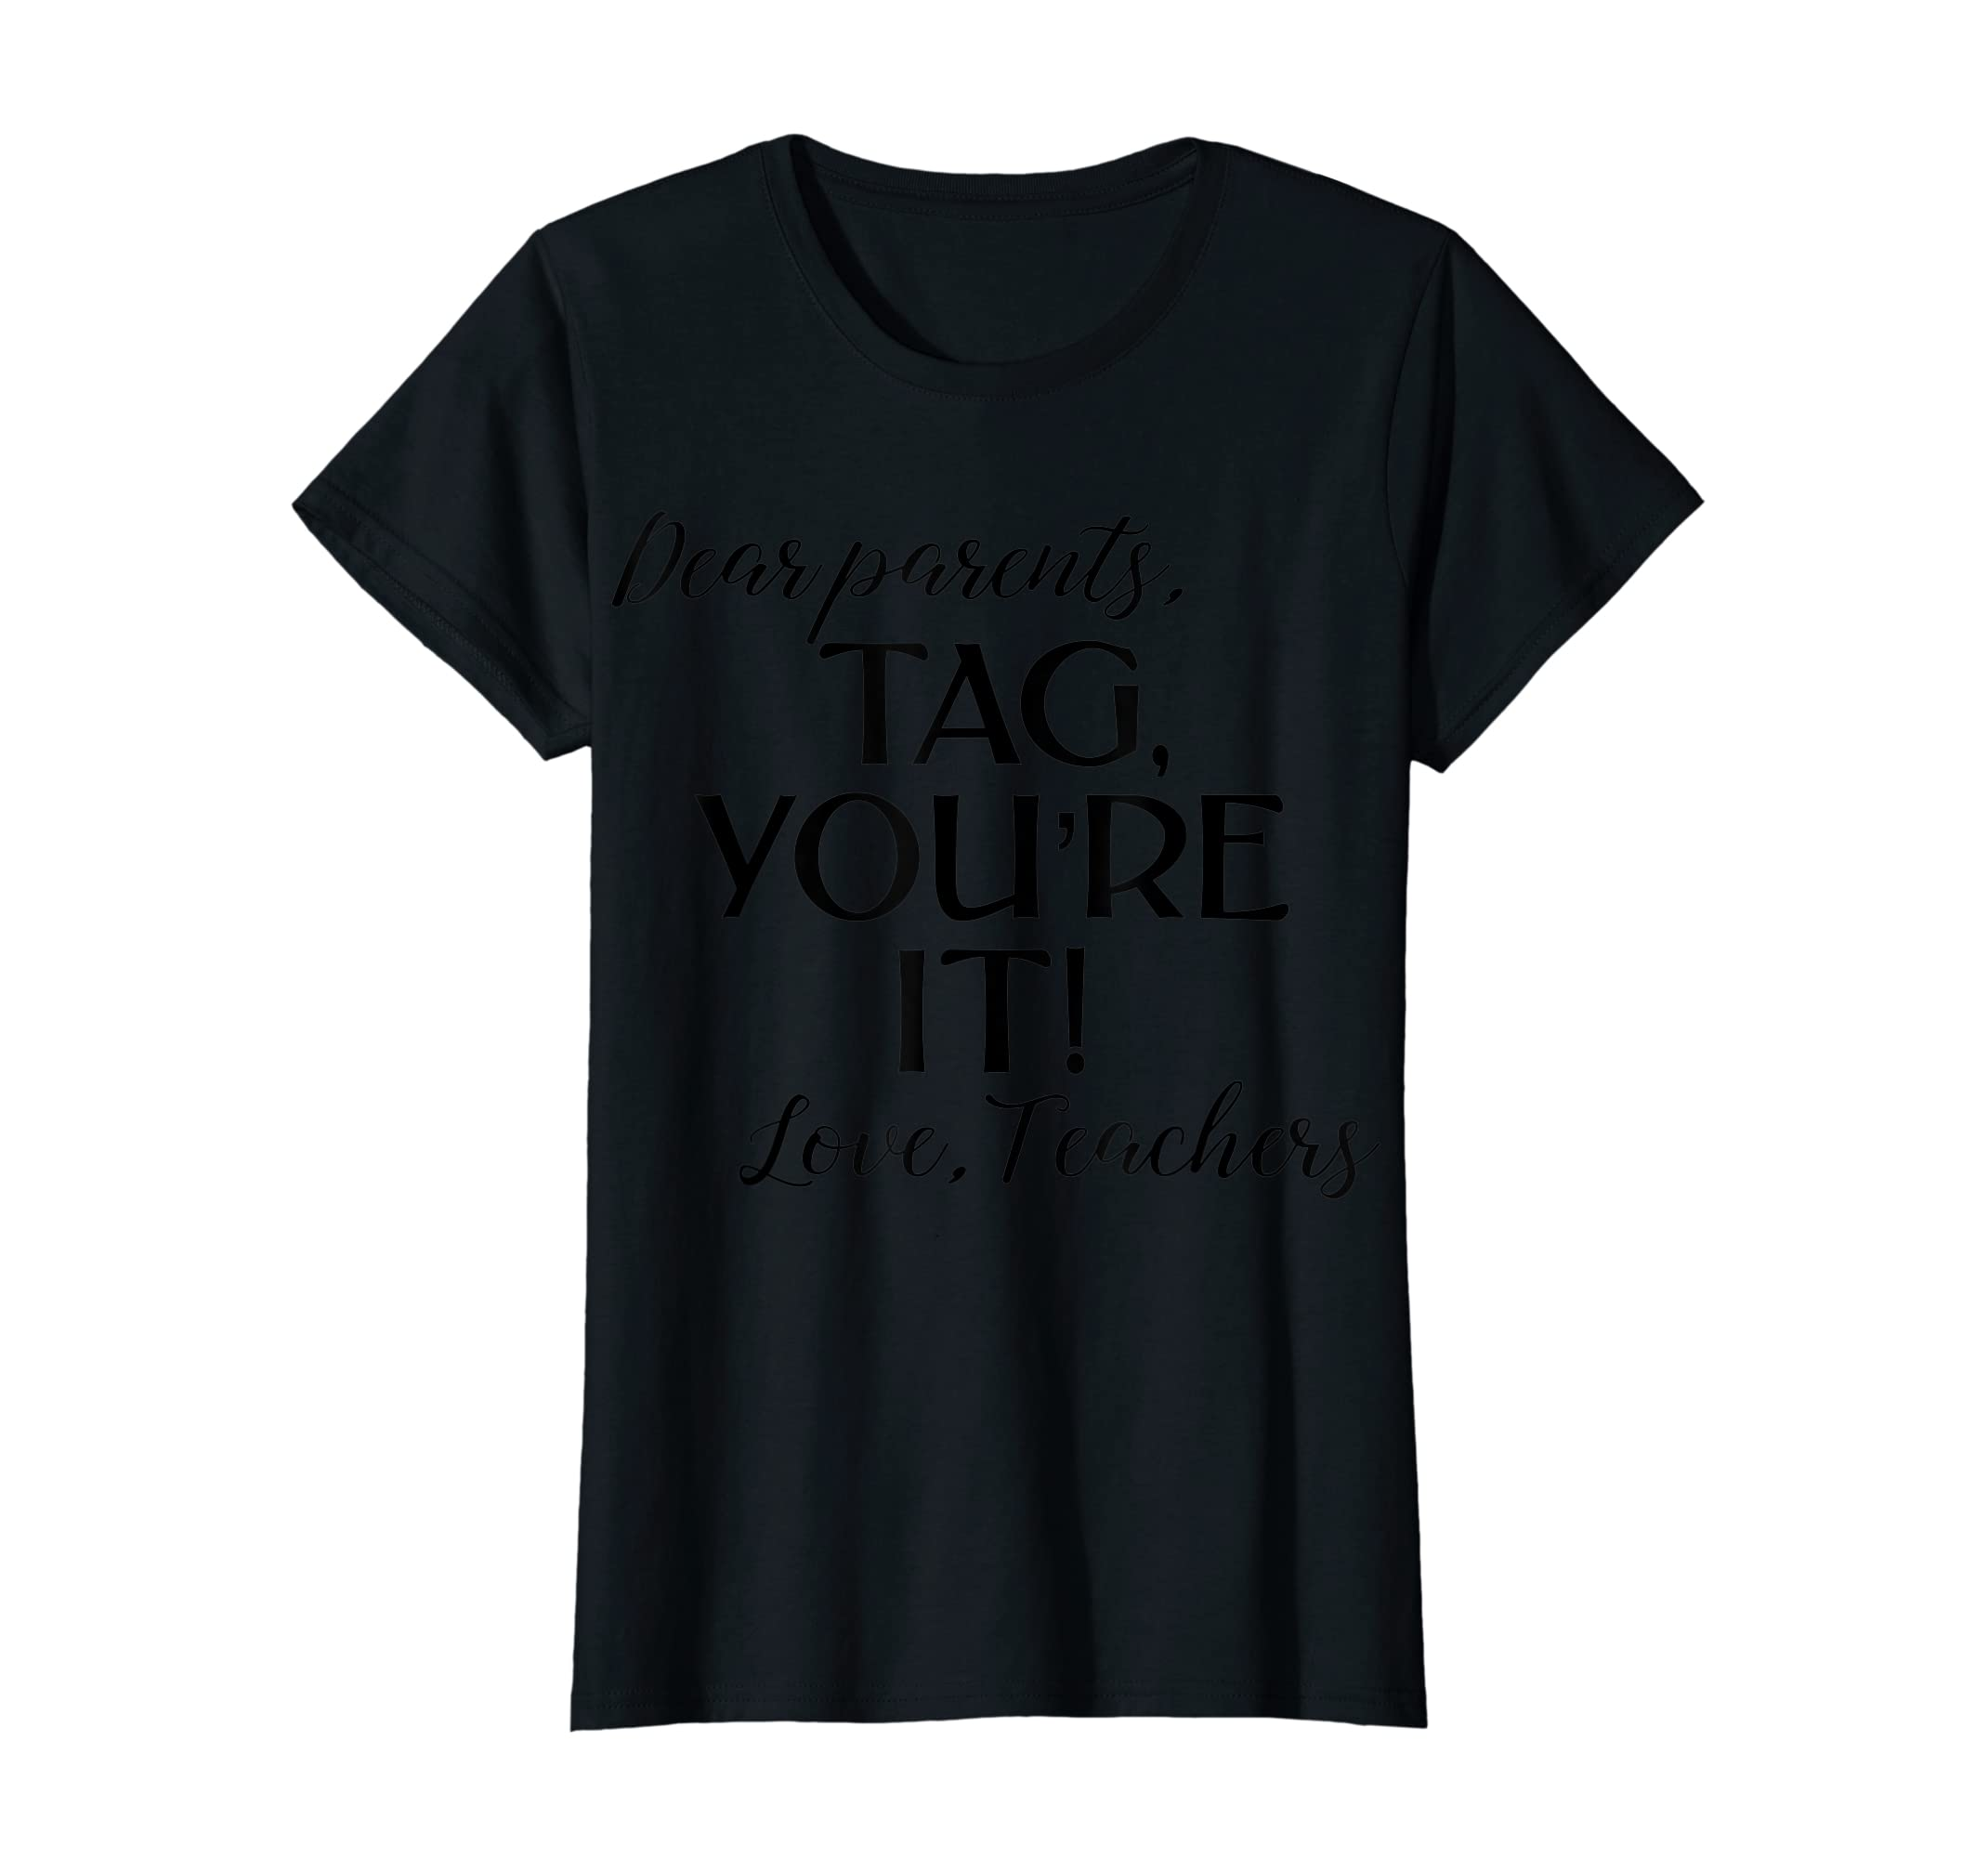 Dear Parents Tag You're It Love Teachers Shirt Last Day Tee-Women's T-Shirt-Black